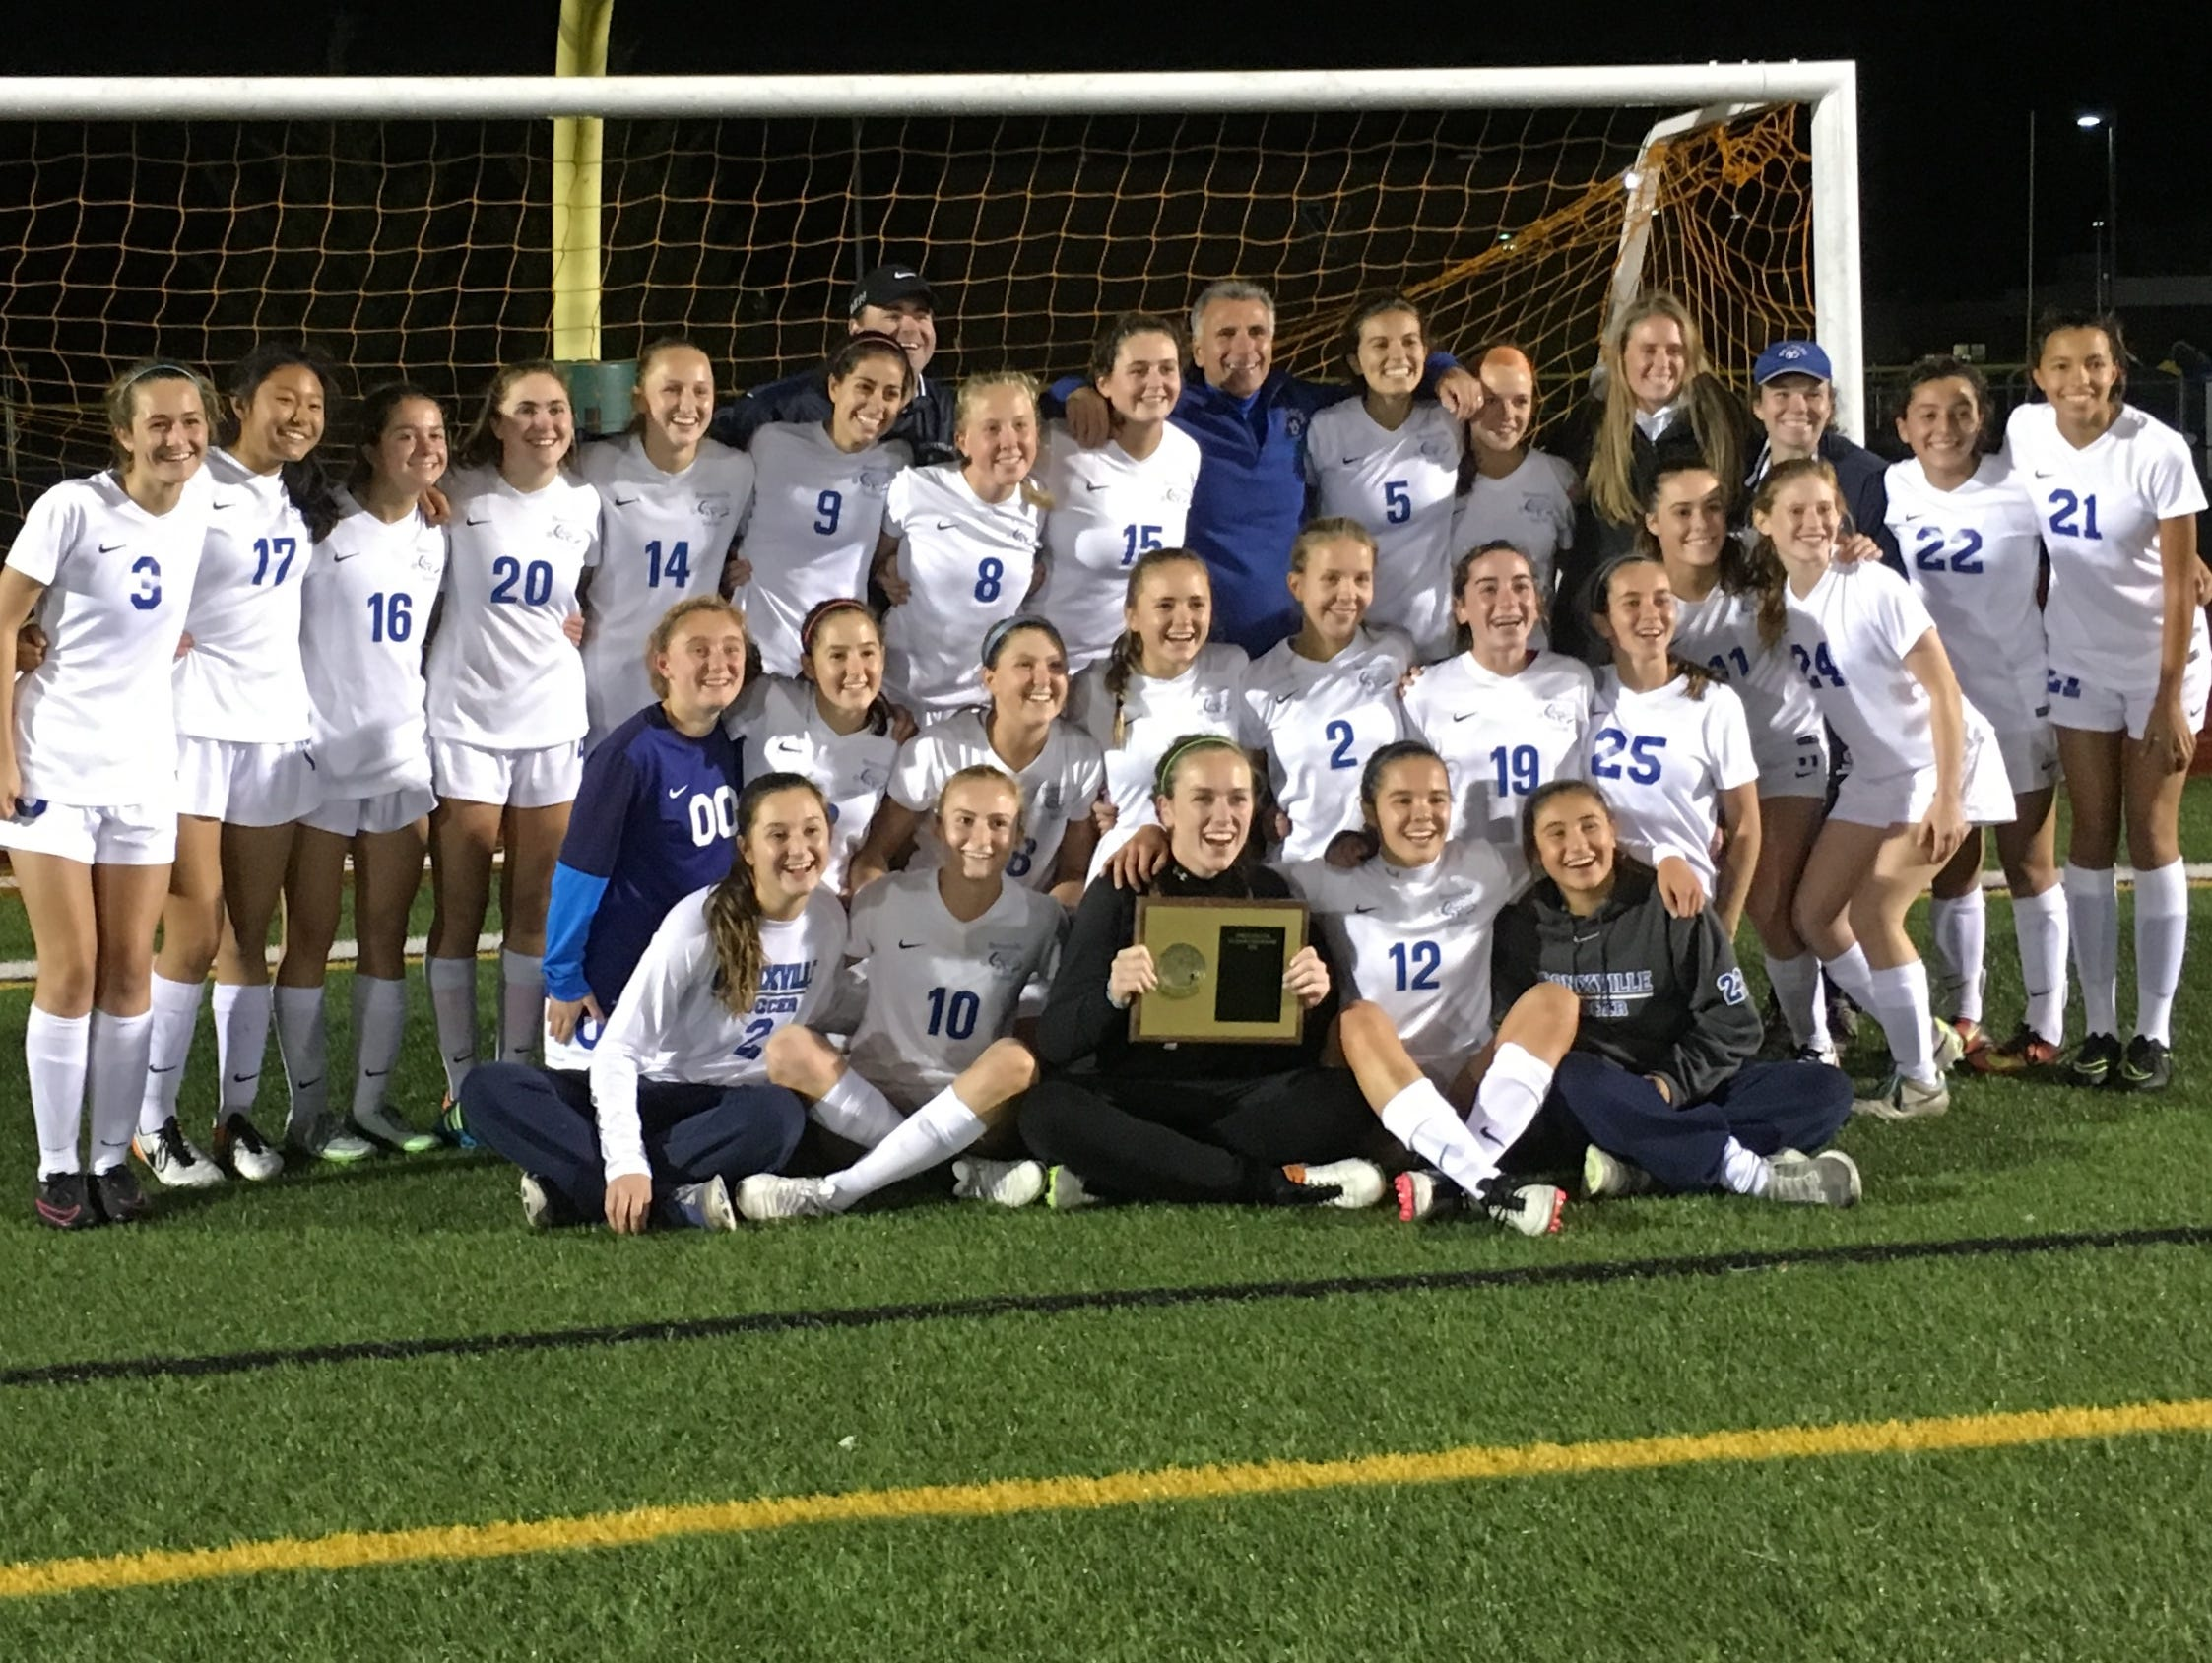 Bronxville celebrates its second Section 1 Class B Championship in three seasons on Sunday after beating Albertus Magnus 1-0 in overtime